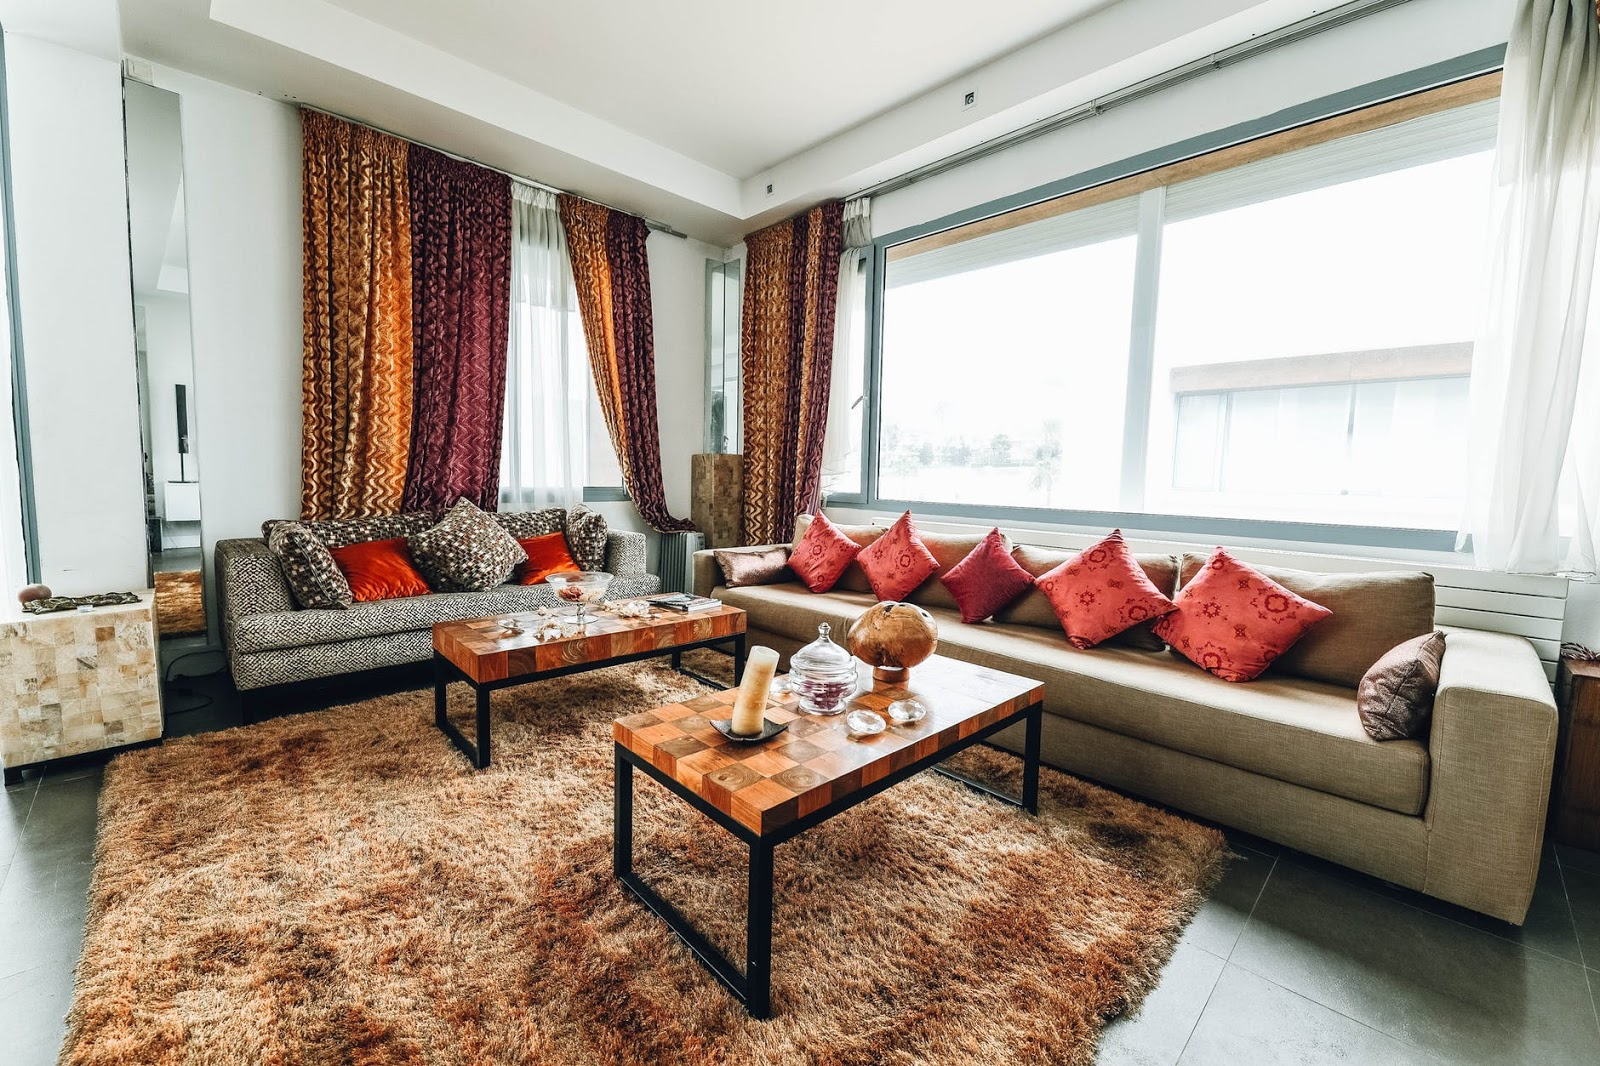 7 Irresistible Interior Decoration Schemes for your Dream Home